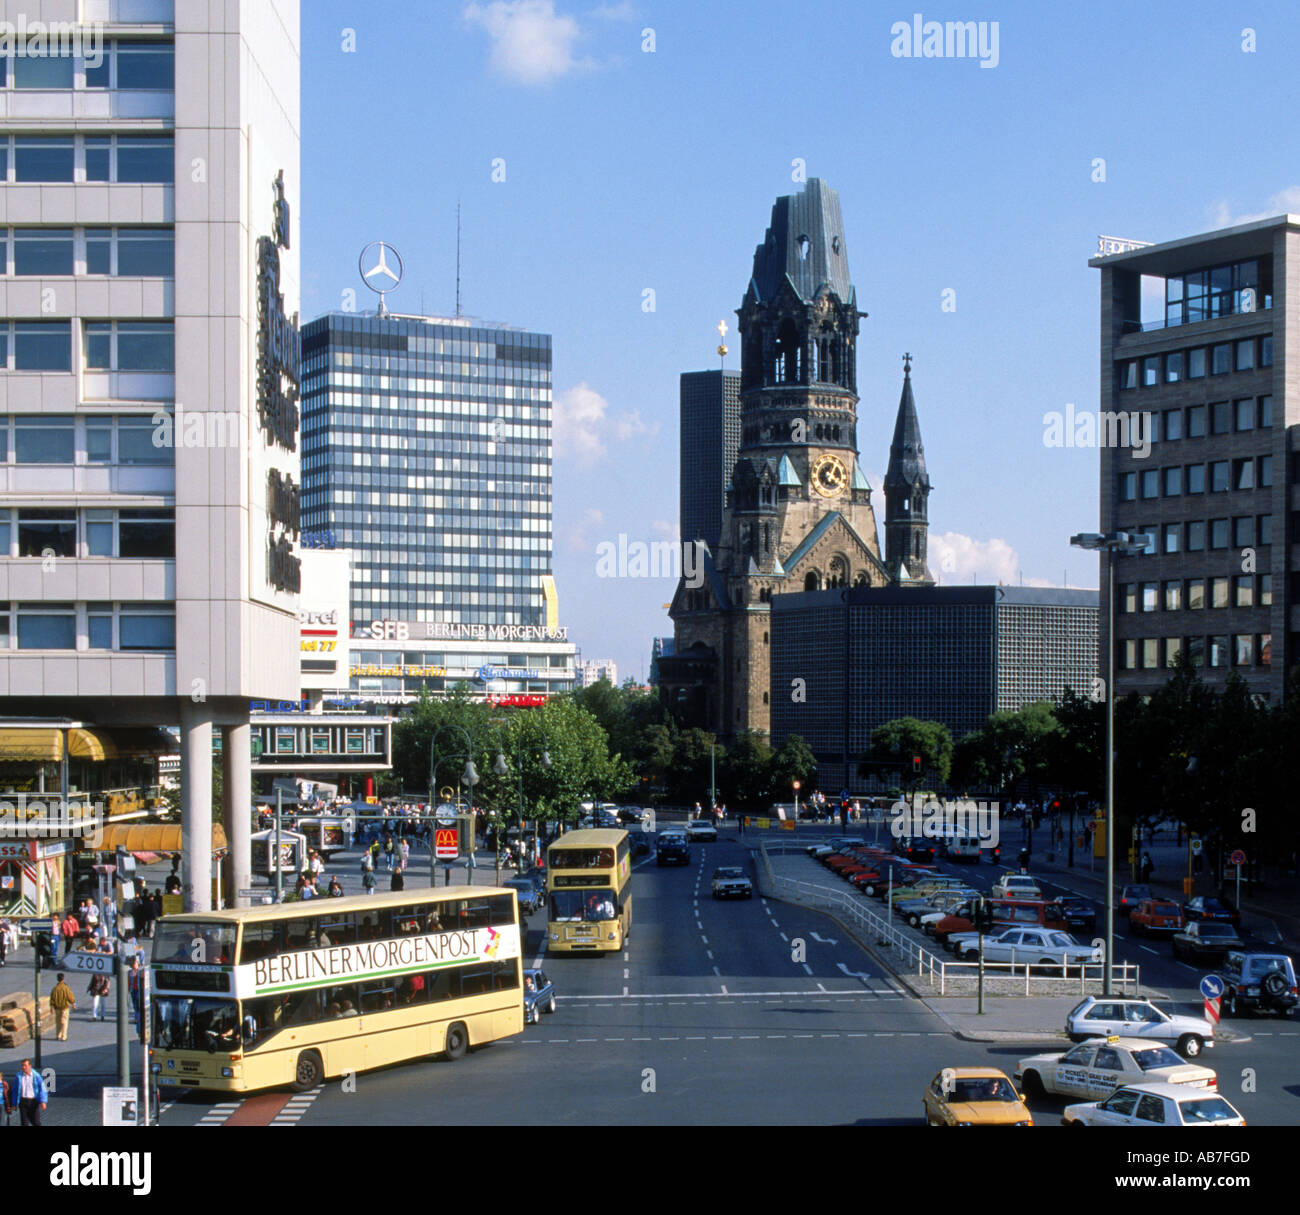 traffic on ku damm strasse with kaiser wilhelm memorial church in stock photo royalty free. Black Bedroom Furniture Sets. Home Design Ideas